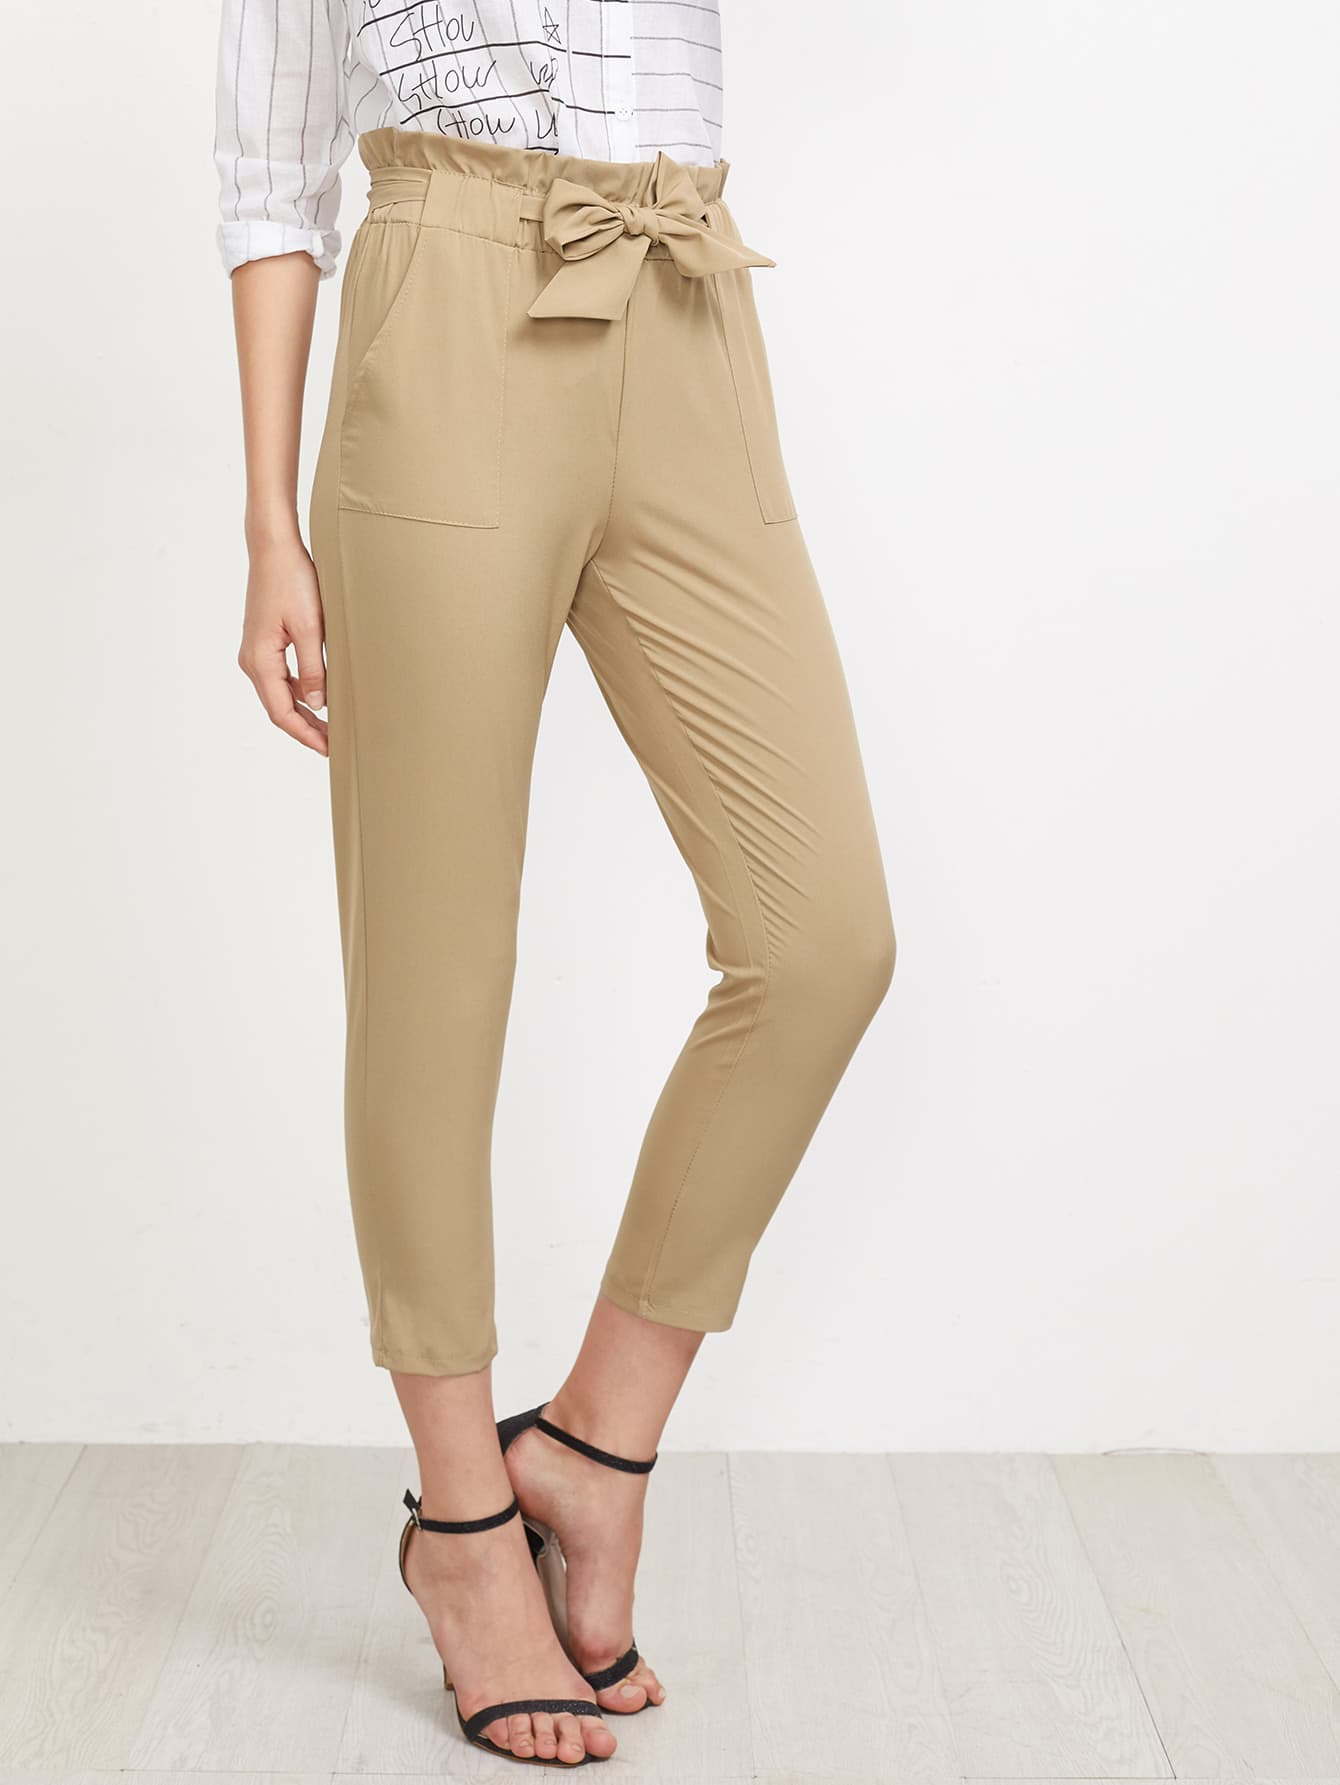 Image of Frill Waist Self Tie Tailored Pants